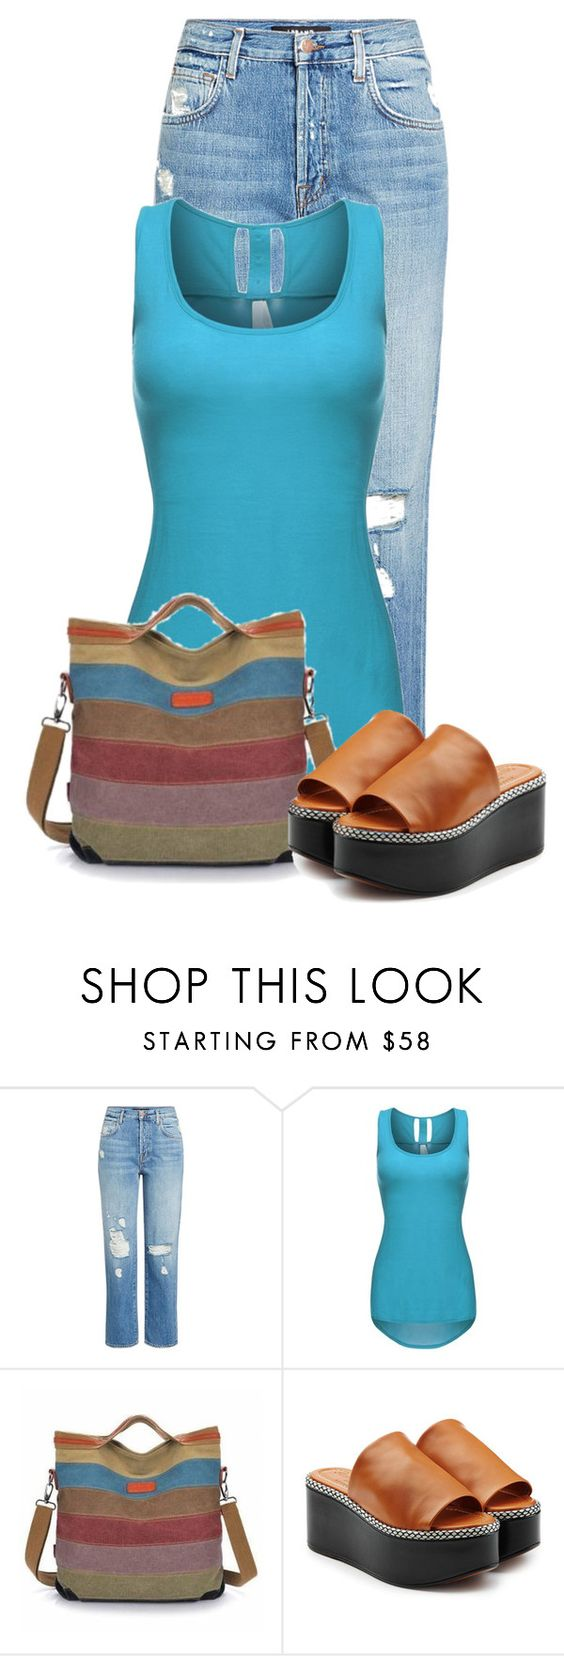 """""""Untitled #21590"""" by nanette-253 ❤ liked on Polyvore featuring J Brand and Robert Clergerie"""